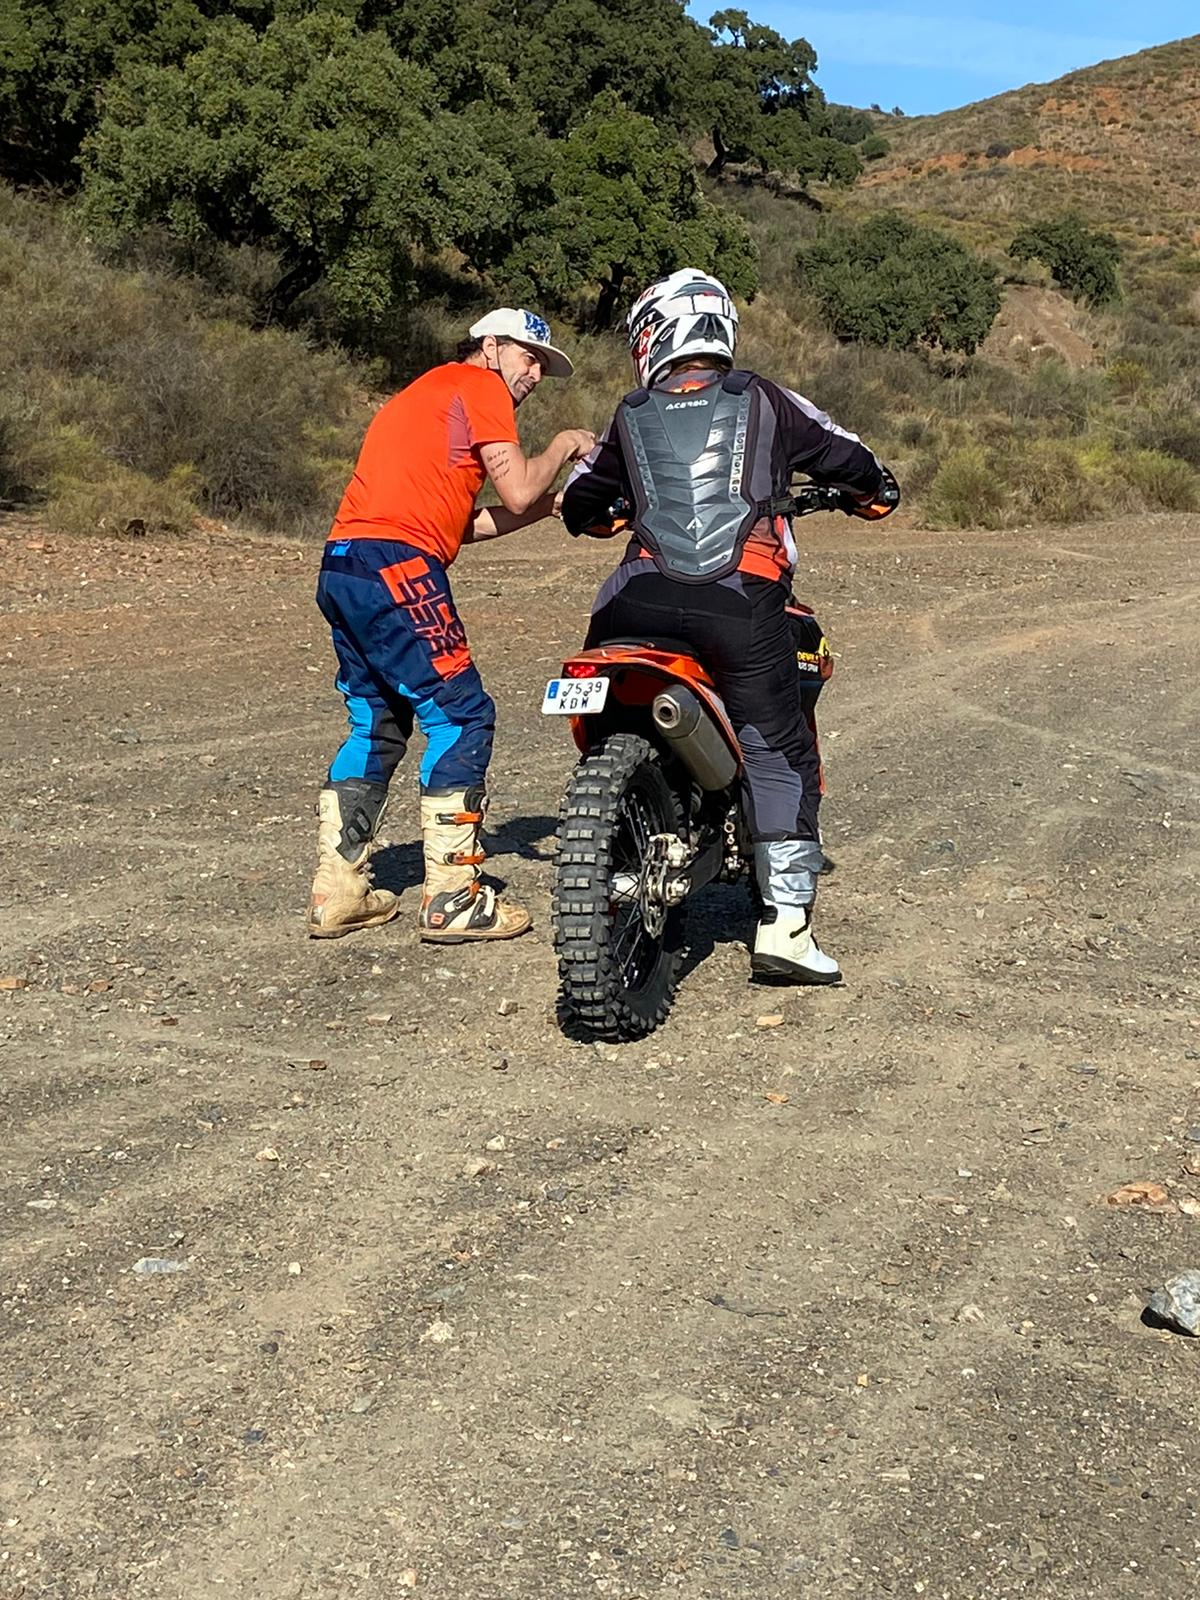 A teacher delivering enduro and off road training